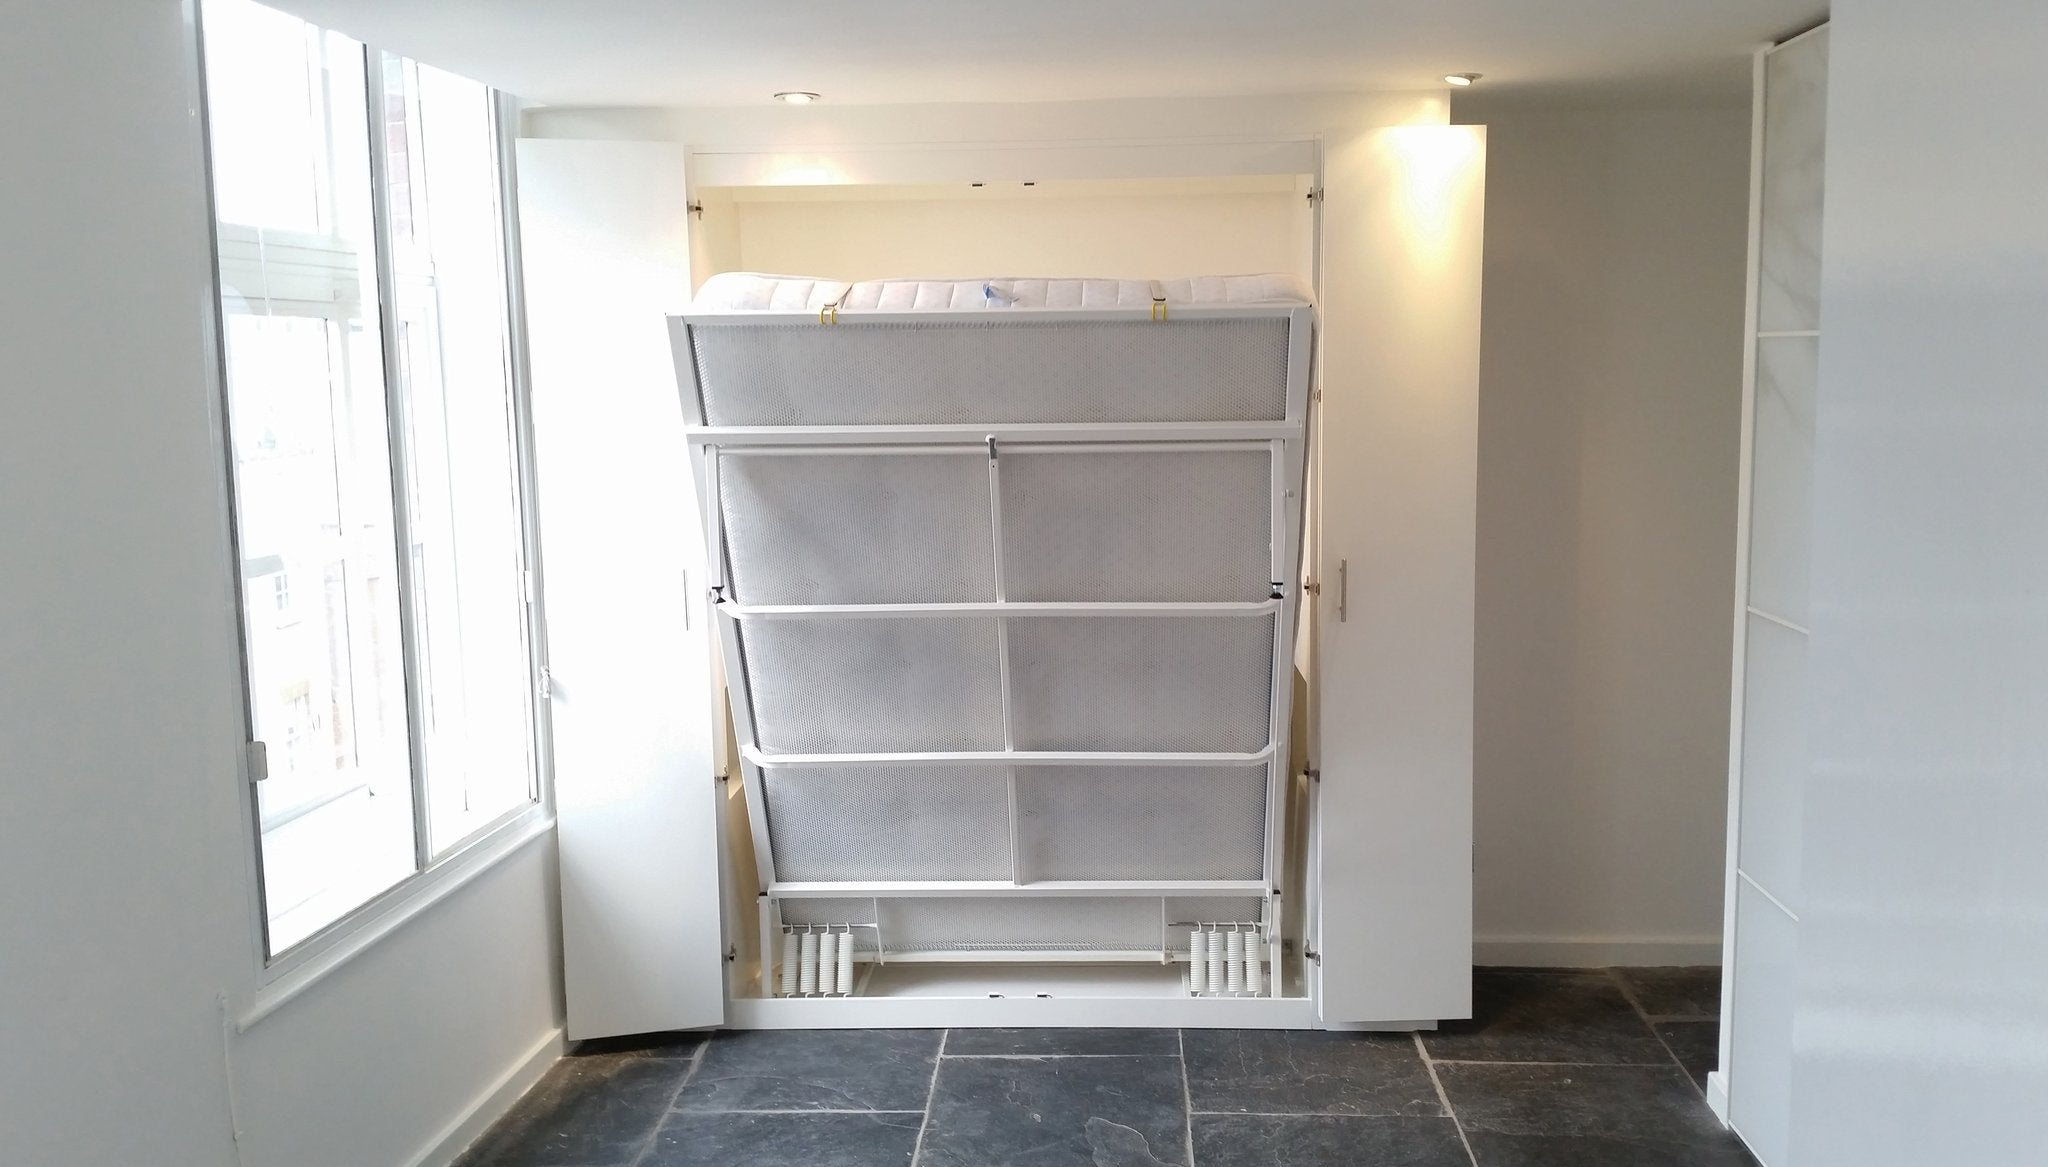 Wall beds direct uk wall bed pull down 10yr guarantee wall bed wall beds wall beds uk pull down bed fold away amipublicfo Choice Image